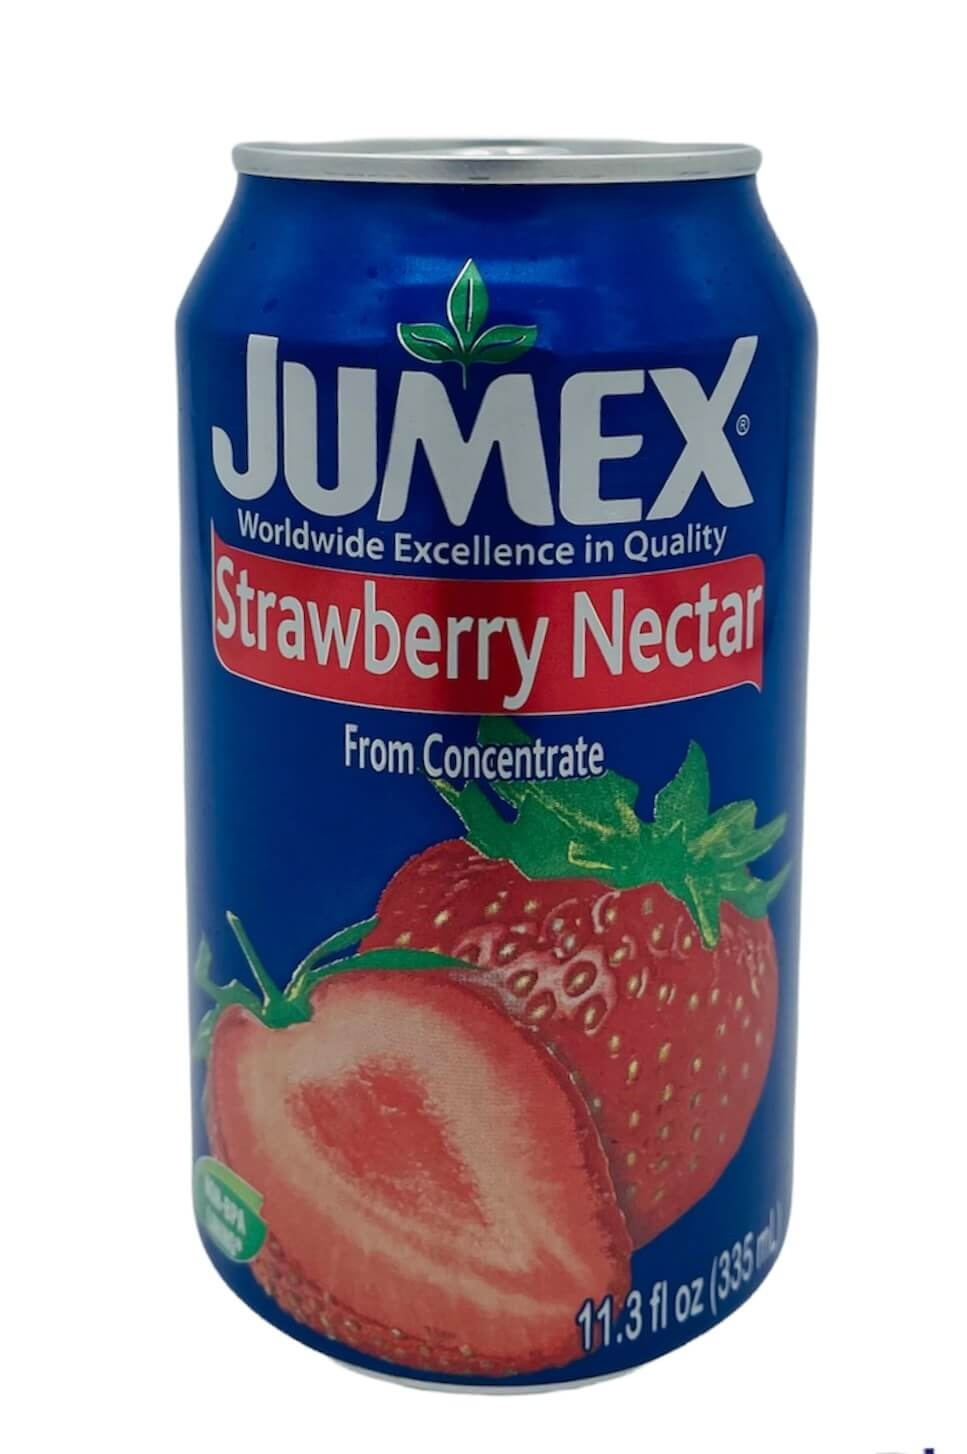 Picture of Strawberry Nectar by Jumex 11.3 FL OZ - Item No. 6219